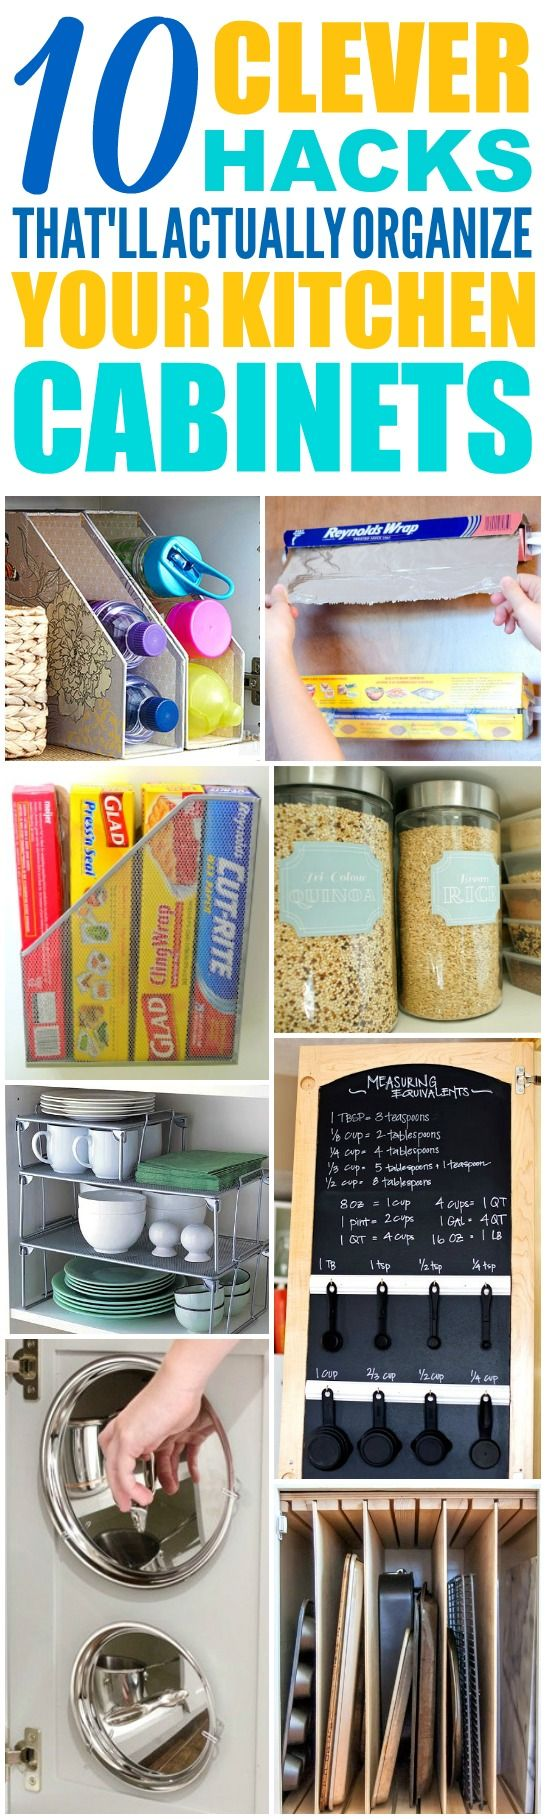 10 Kitchen Cabinet Hacks That Ll Keep Things Super Organized